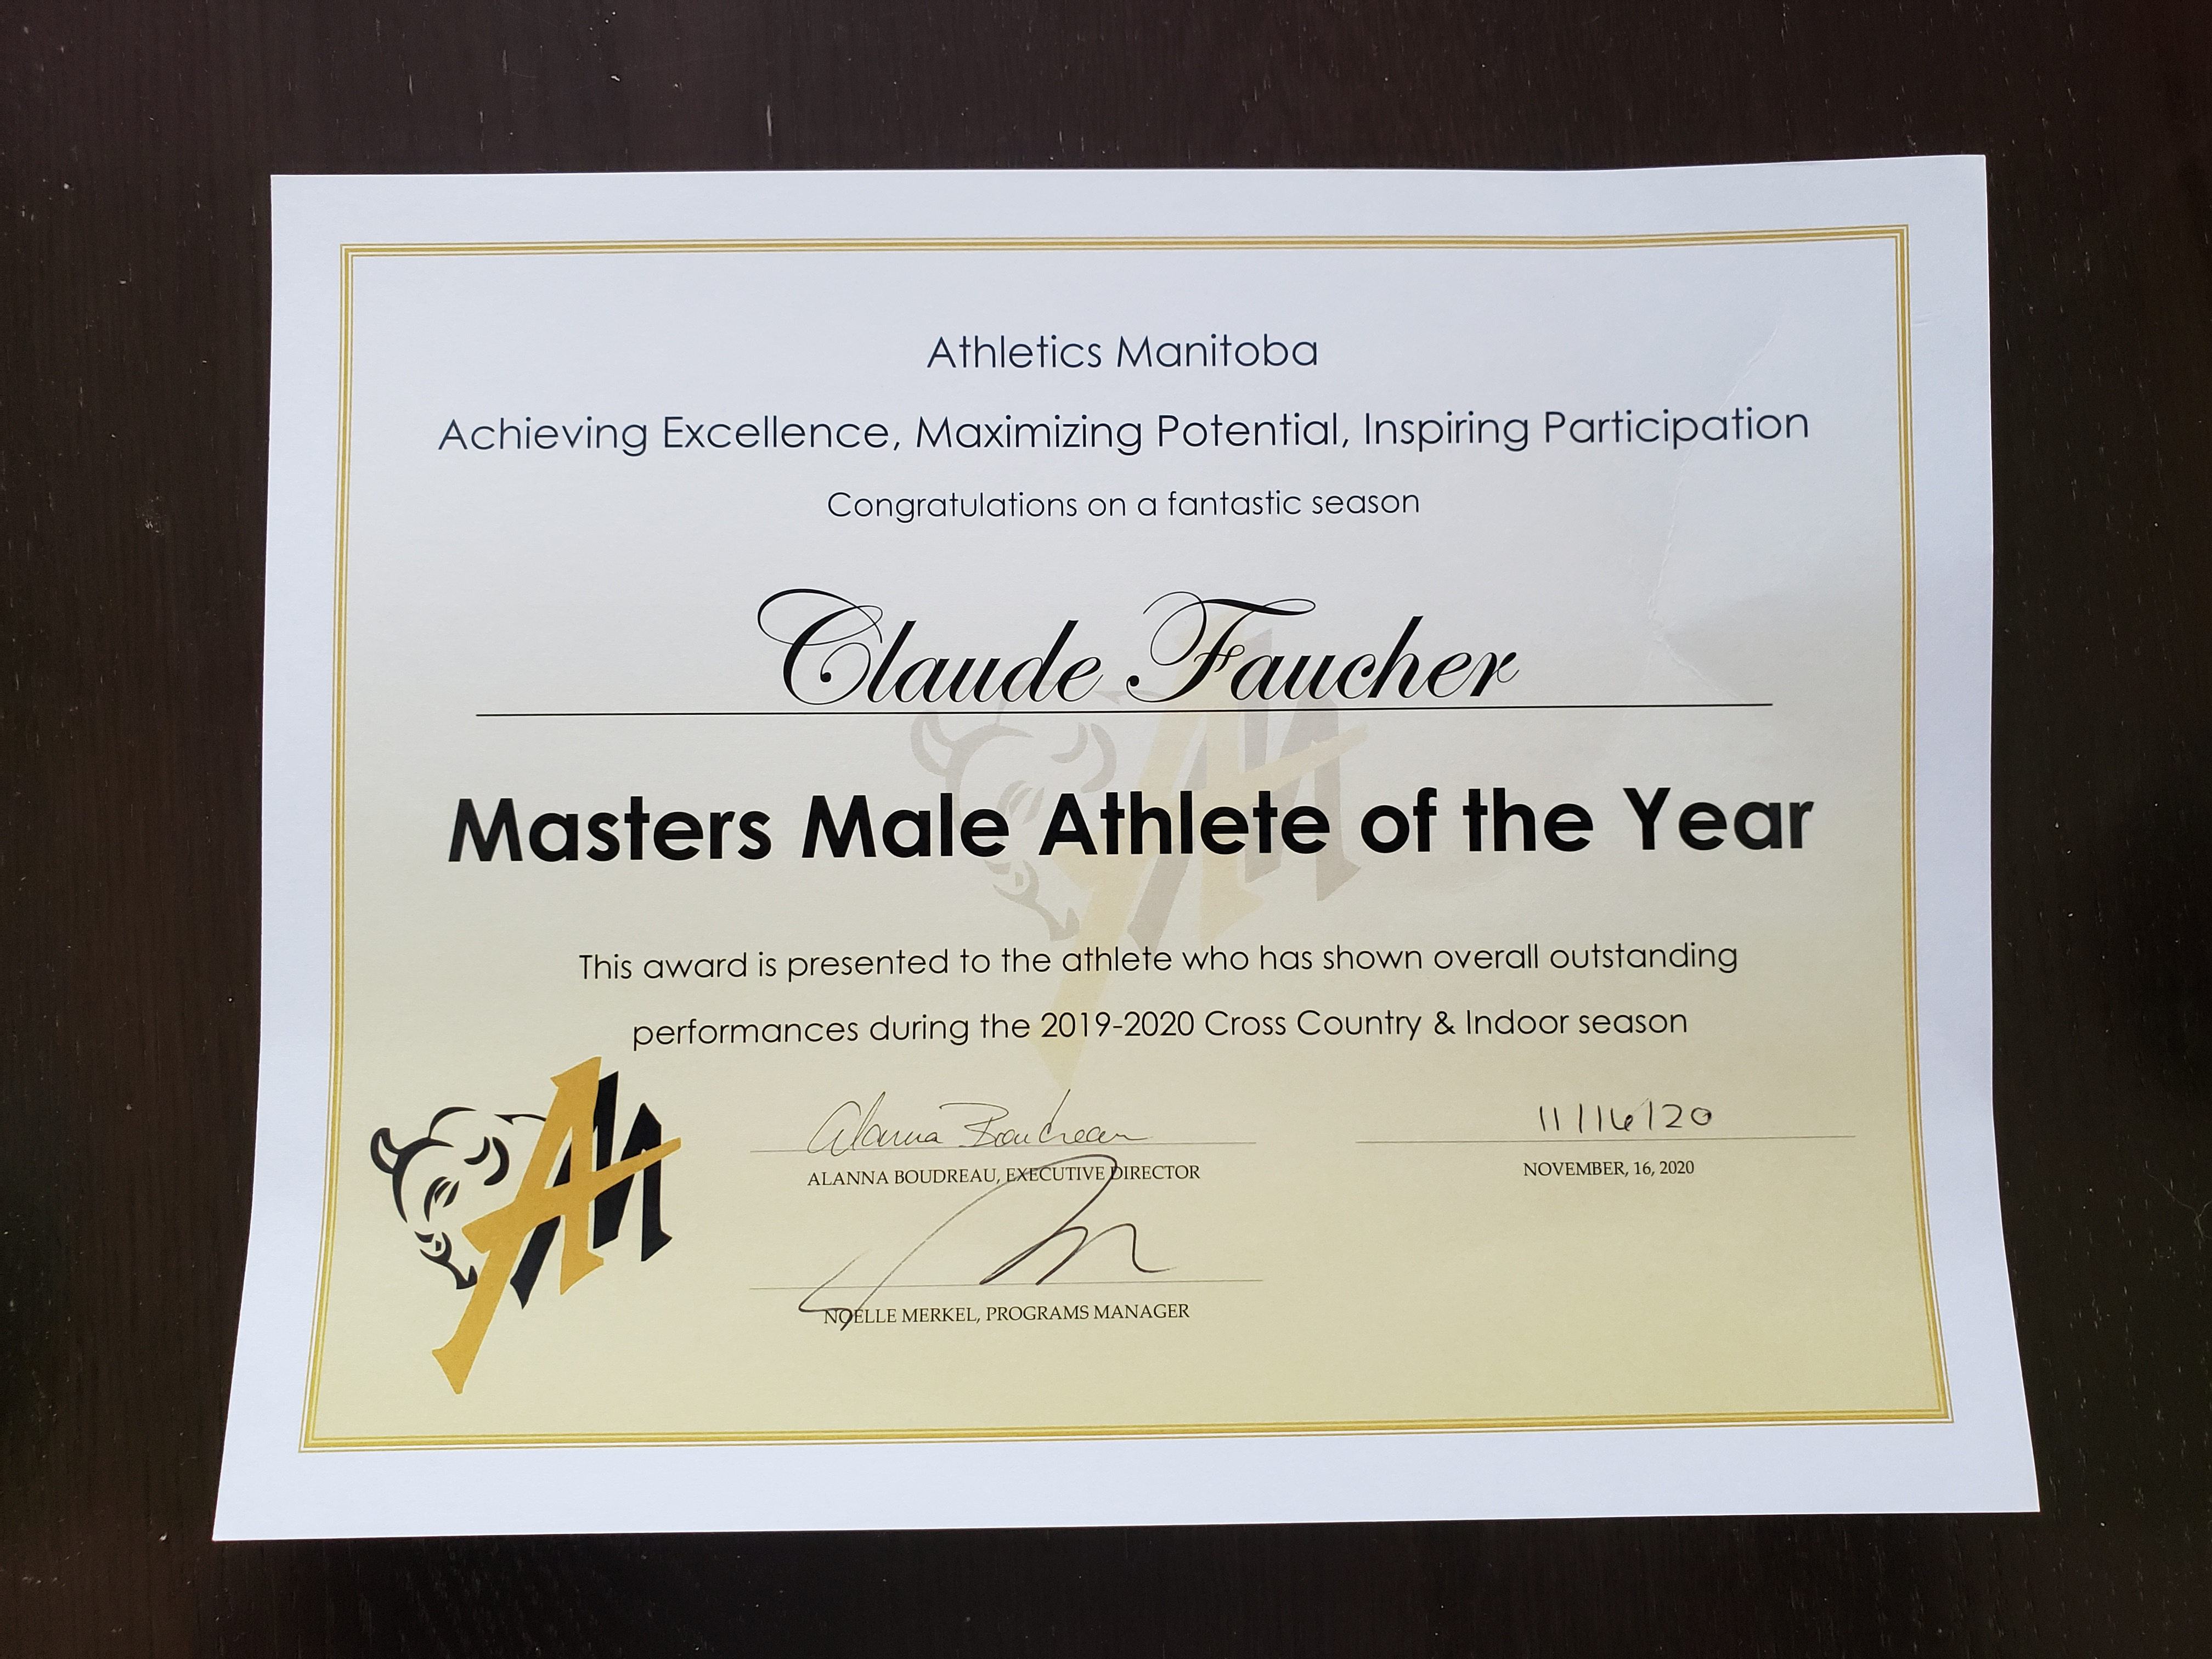 The award presented to Chief Warrant Officer Claude Faucher by Athletics Manitoba. IMAGE: Submitted